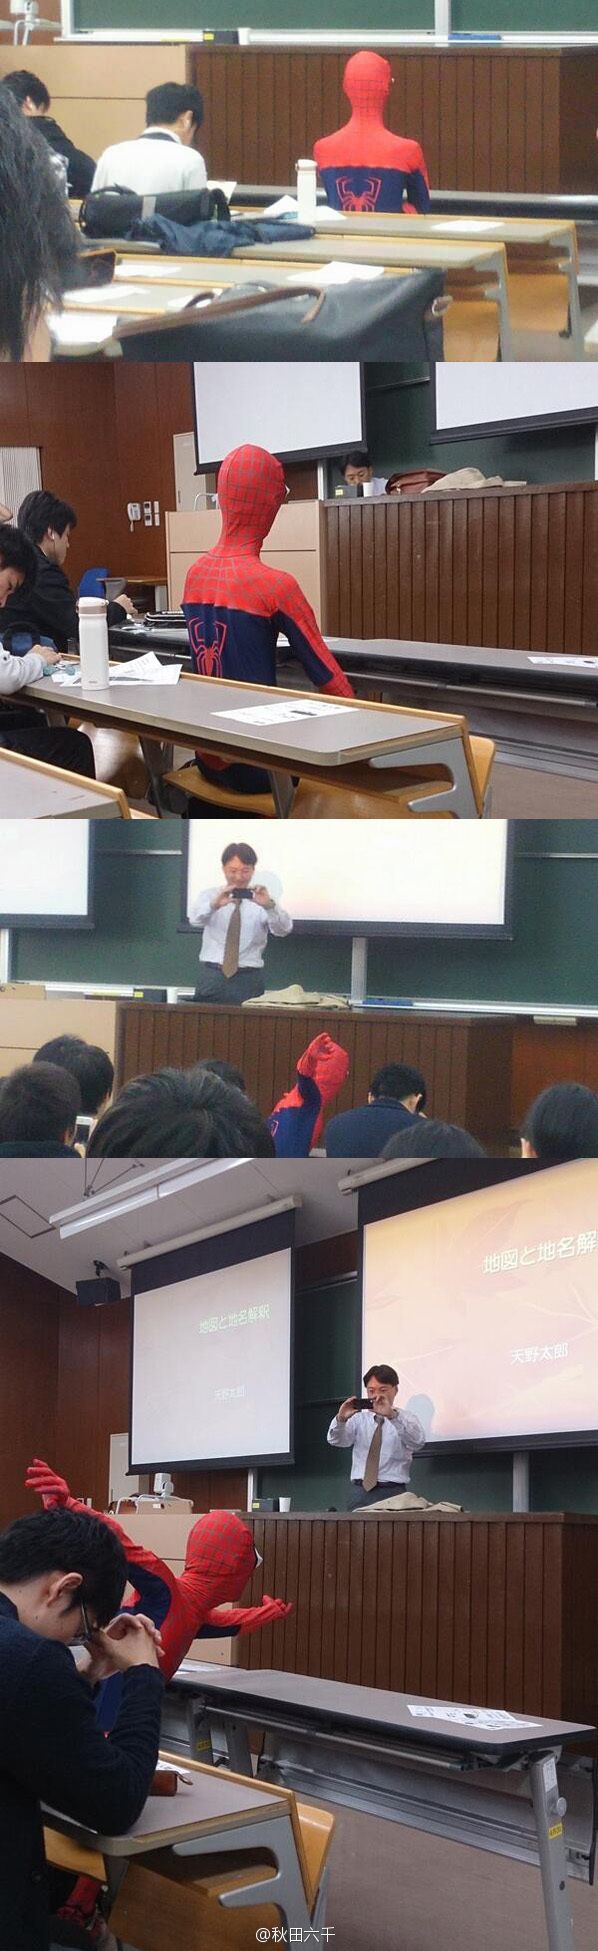 Chinese student attends class in Spider-Man costume for Halloween at Peking University.